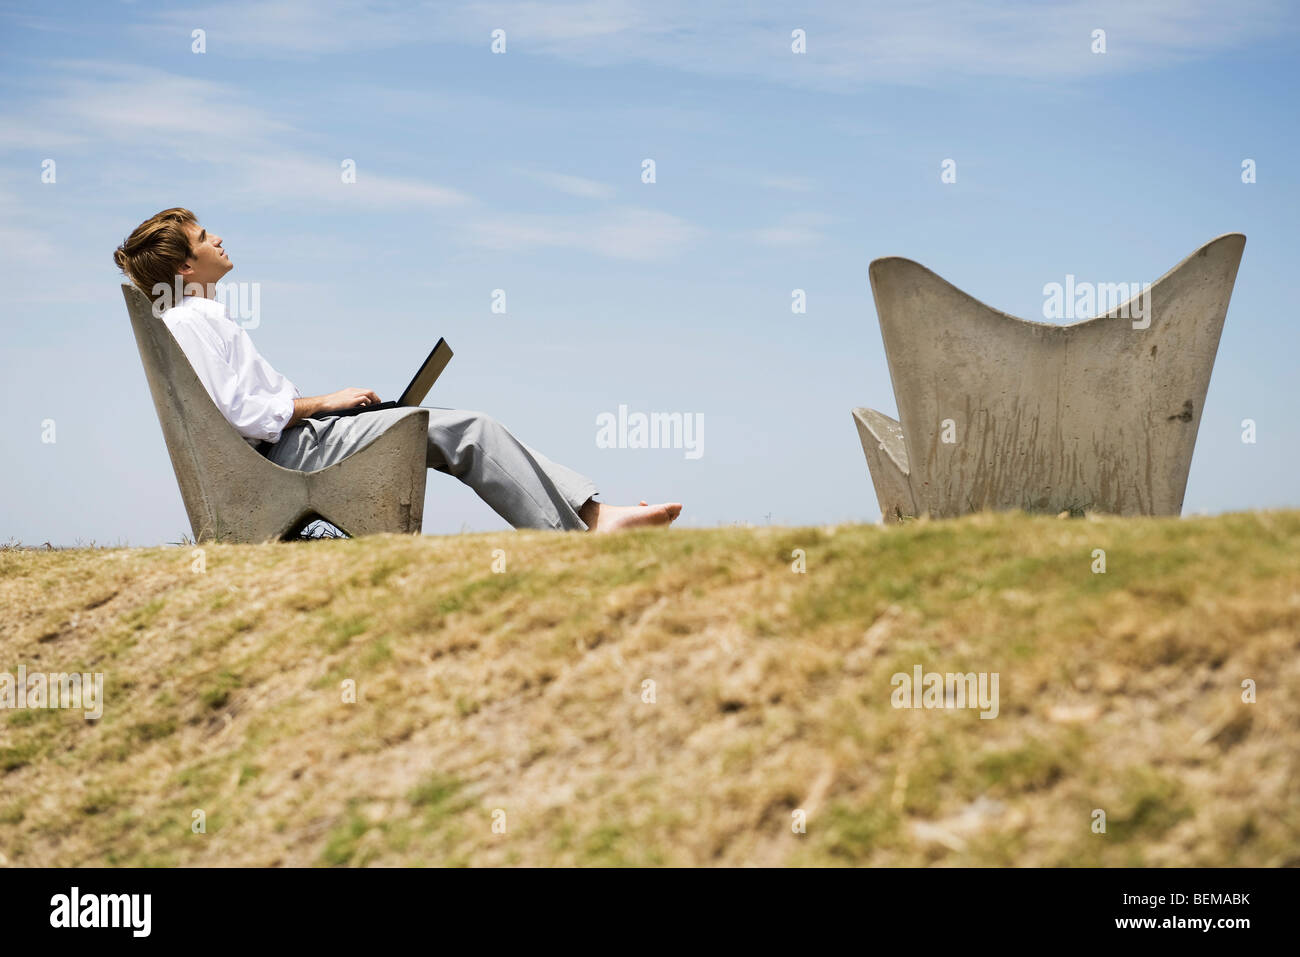 Man with laptop computer outdoors, daydreaming Photo Stock